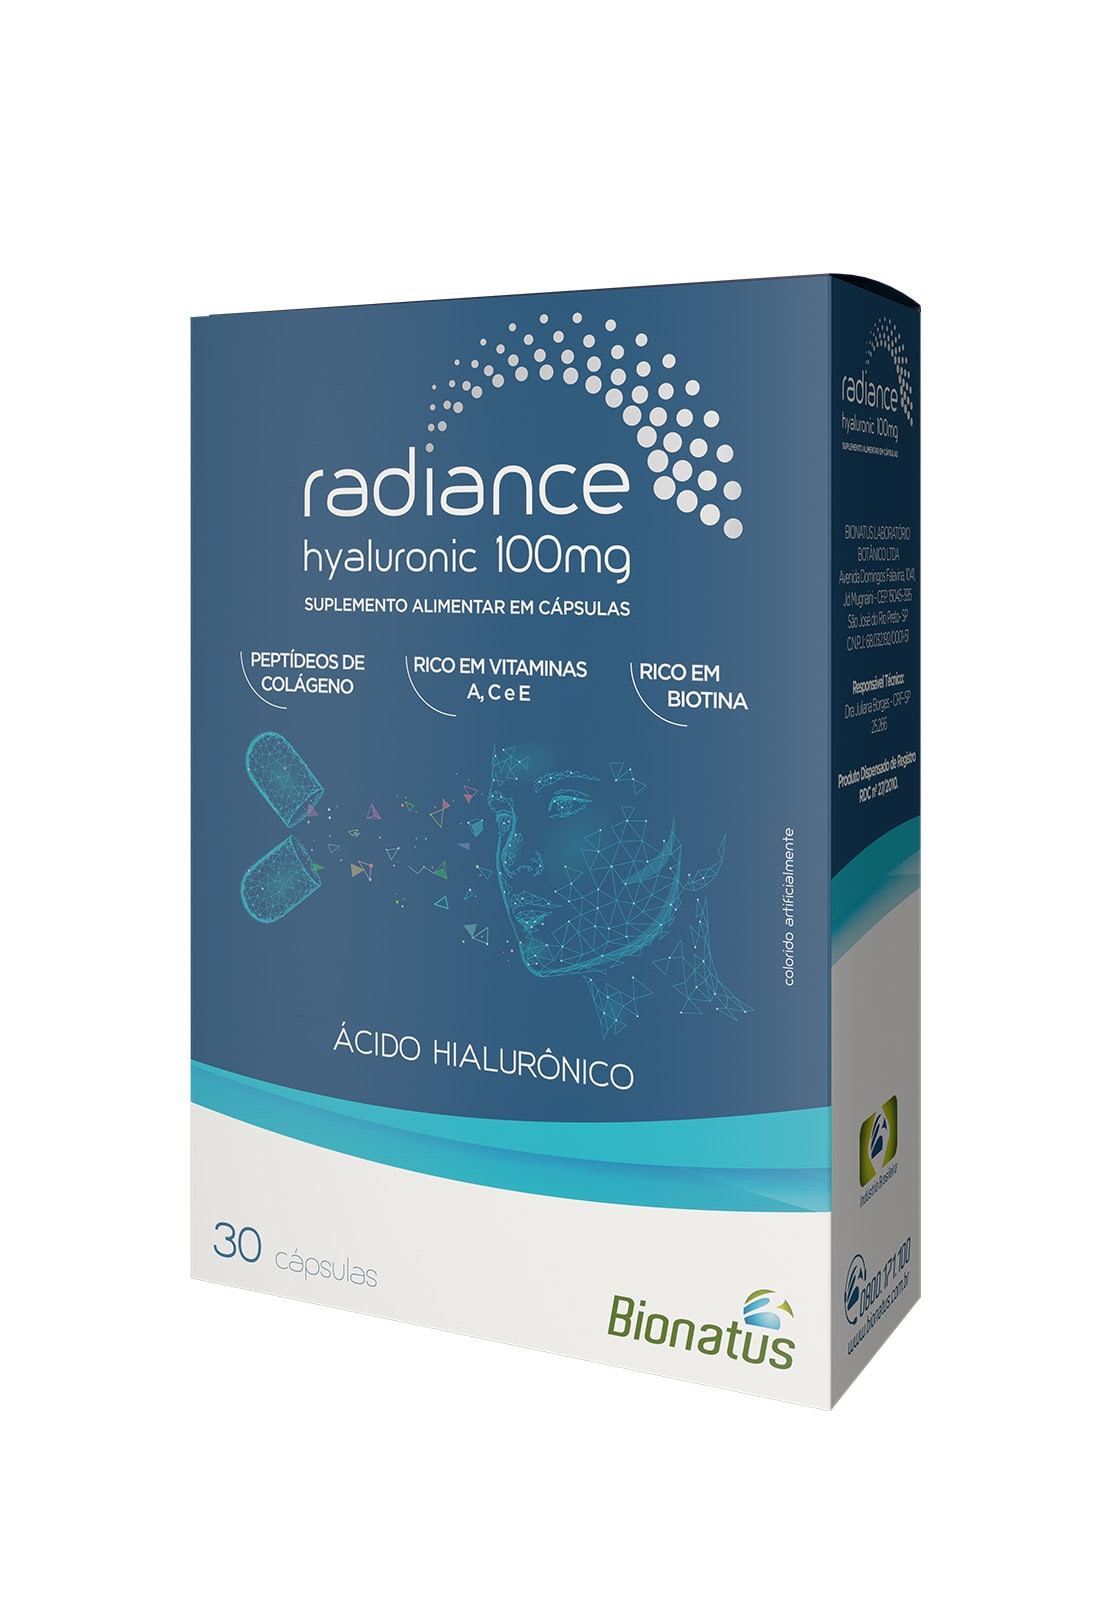 Radiance Hyaluronic 100mg